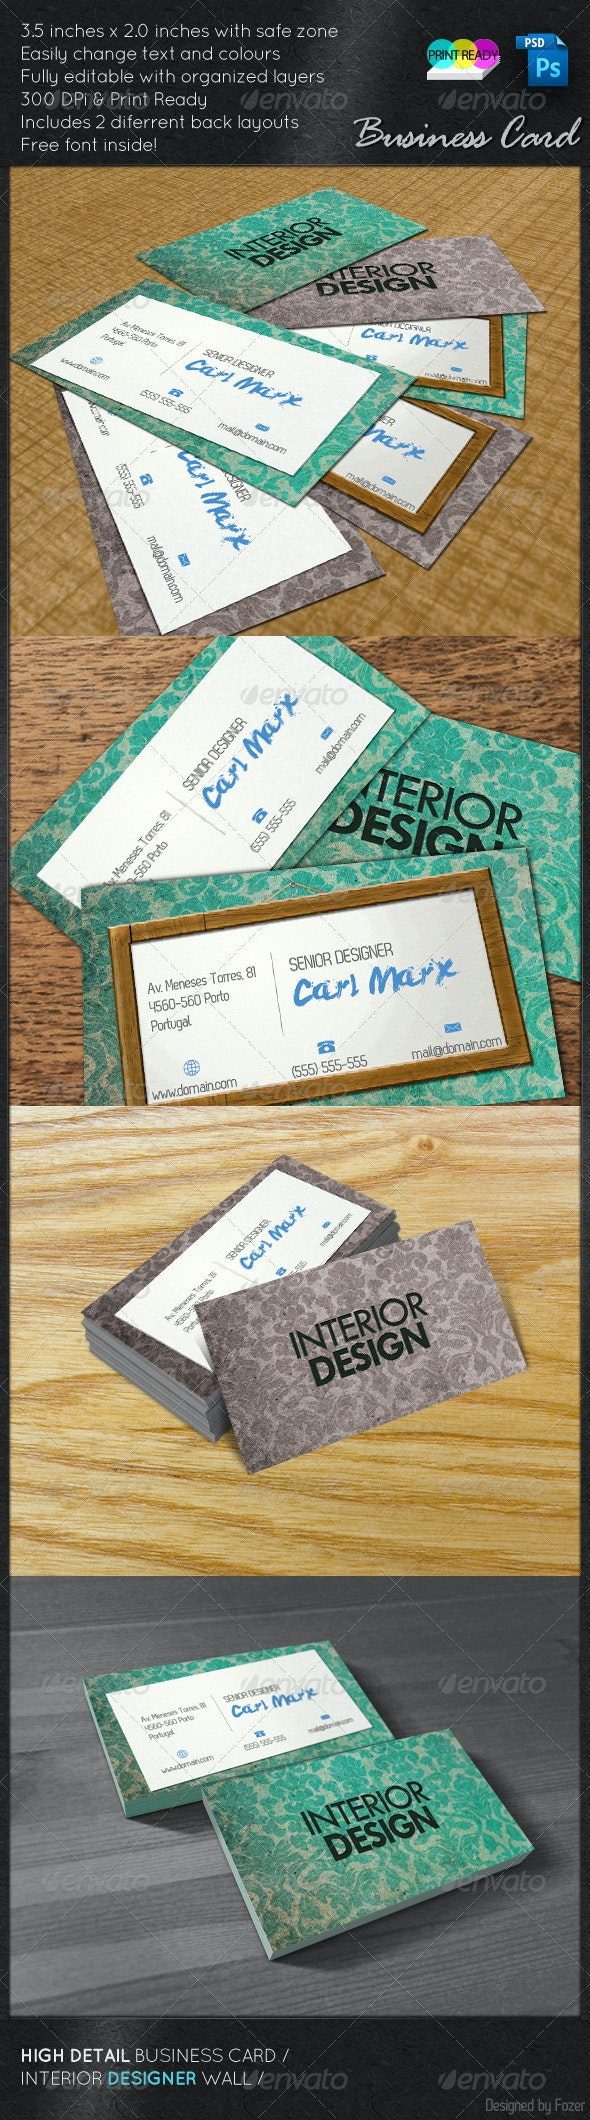 Interior Design Card - Creative Business Cards